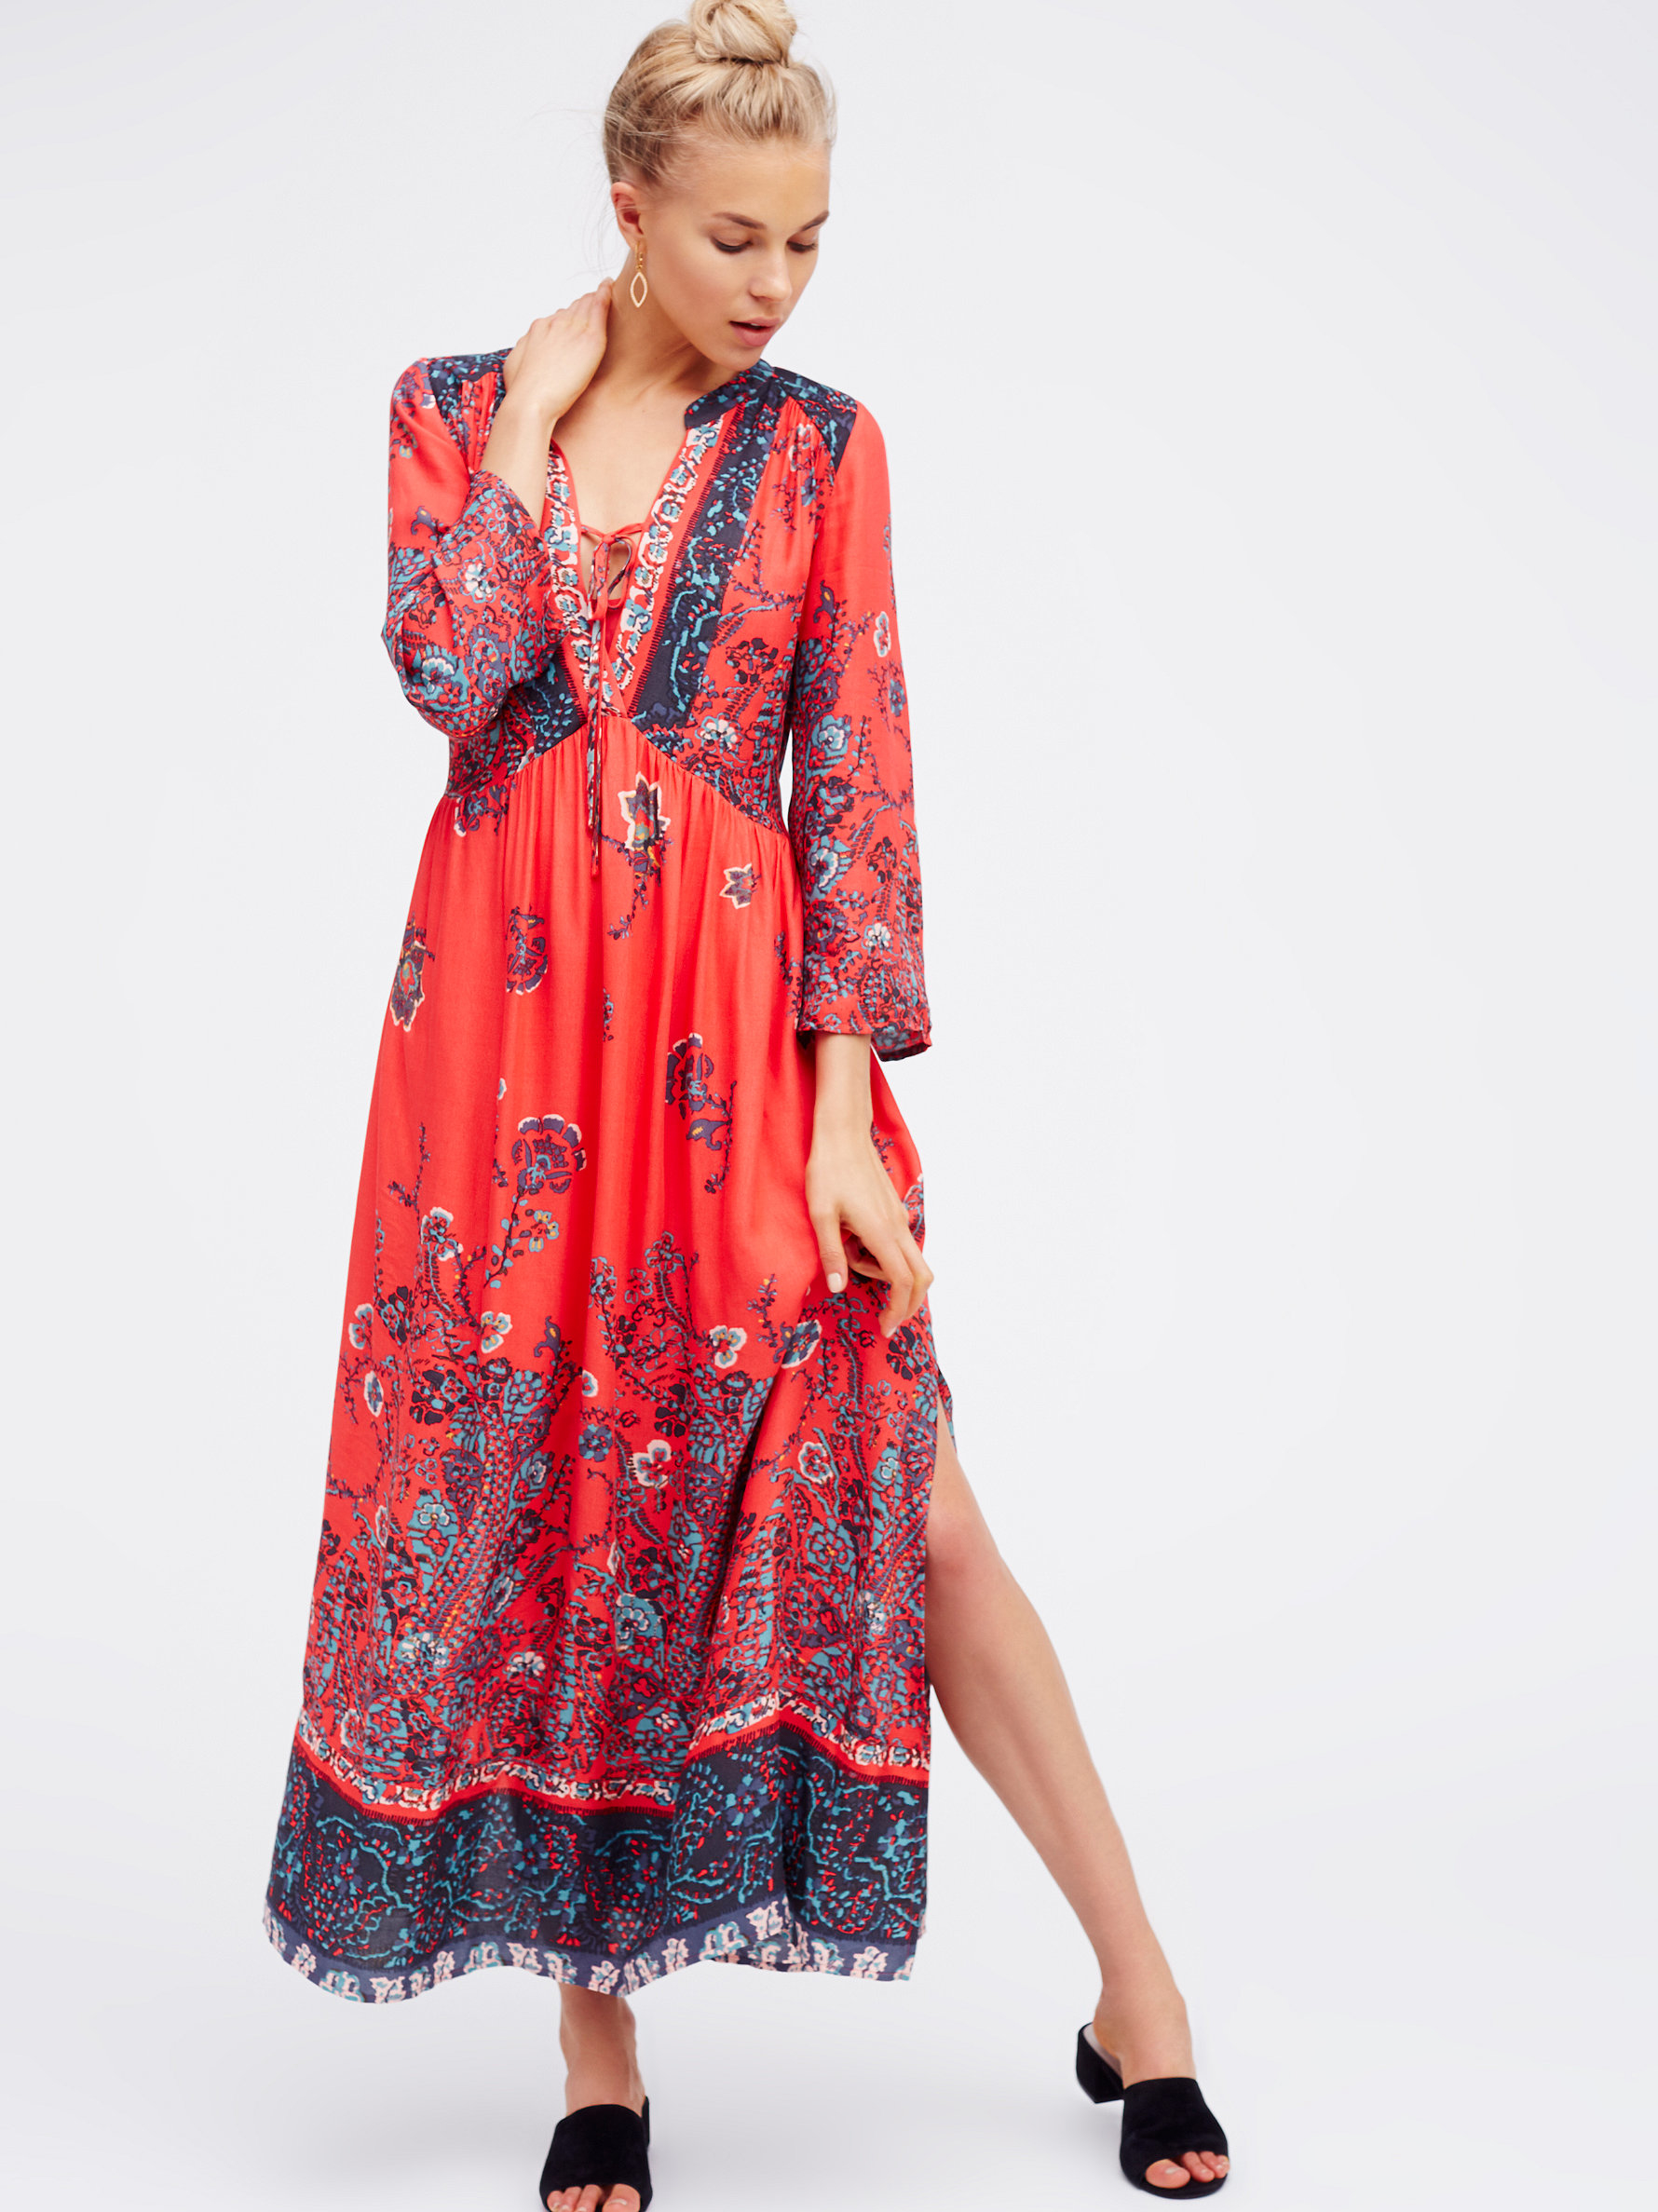 Free People If You Only Knew Maxi Dress In Black